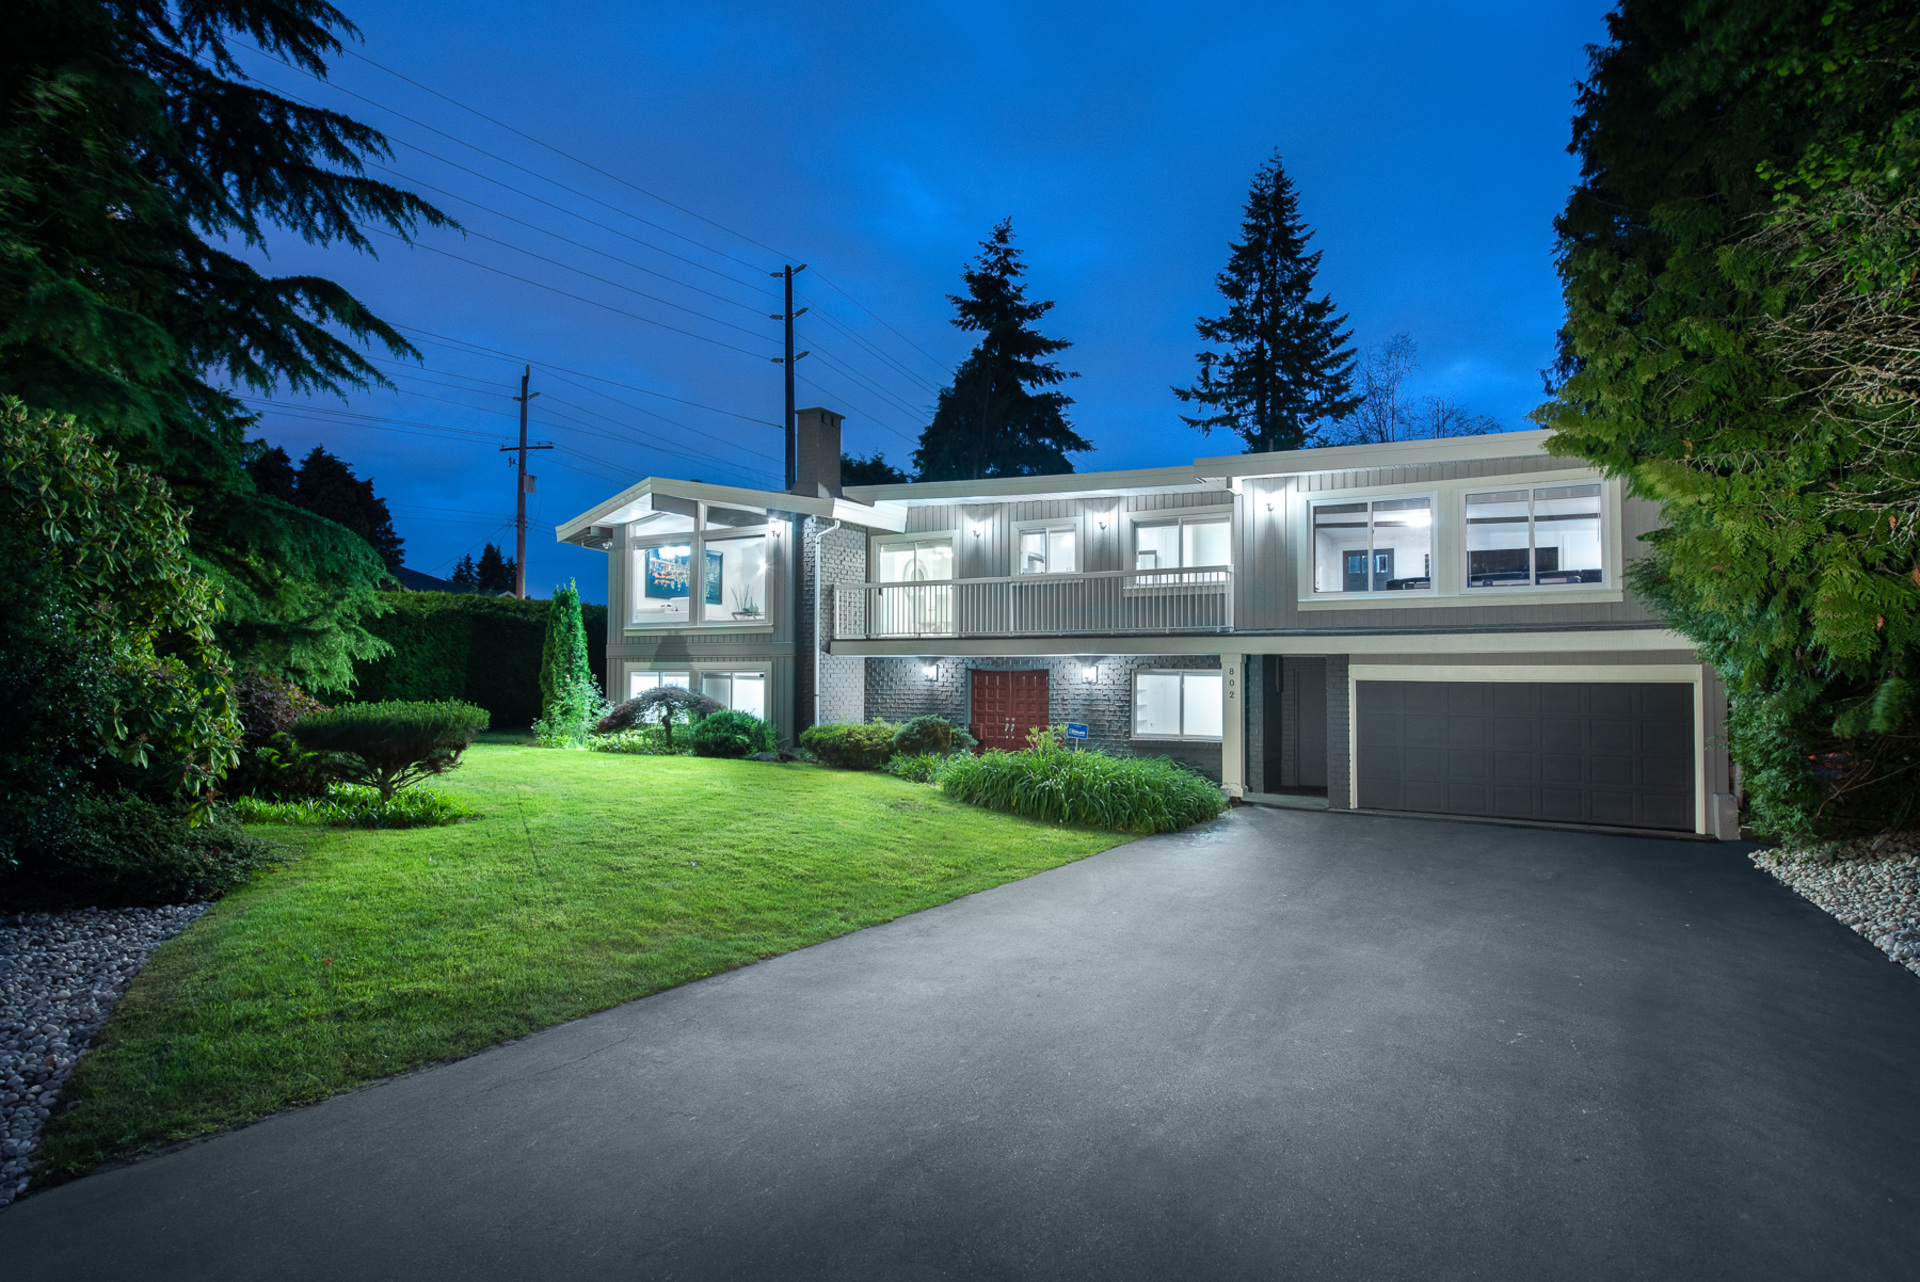 802-crestwood-dr-coquitlam-360hometours-01-web at